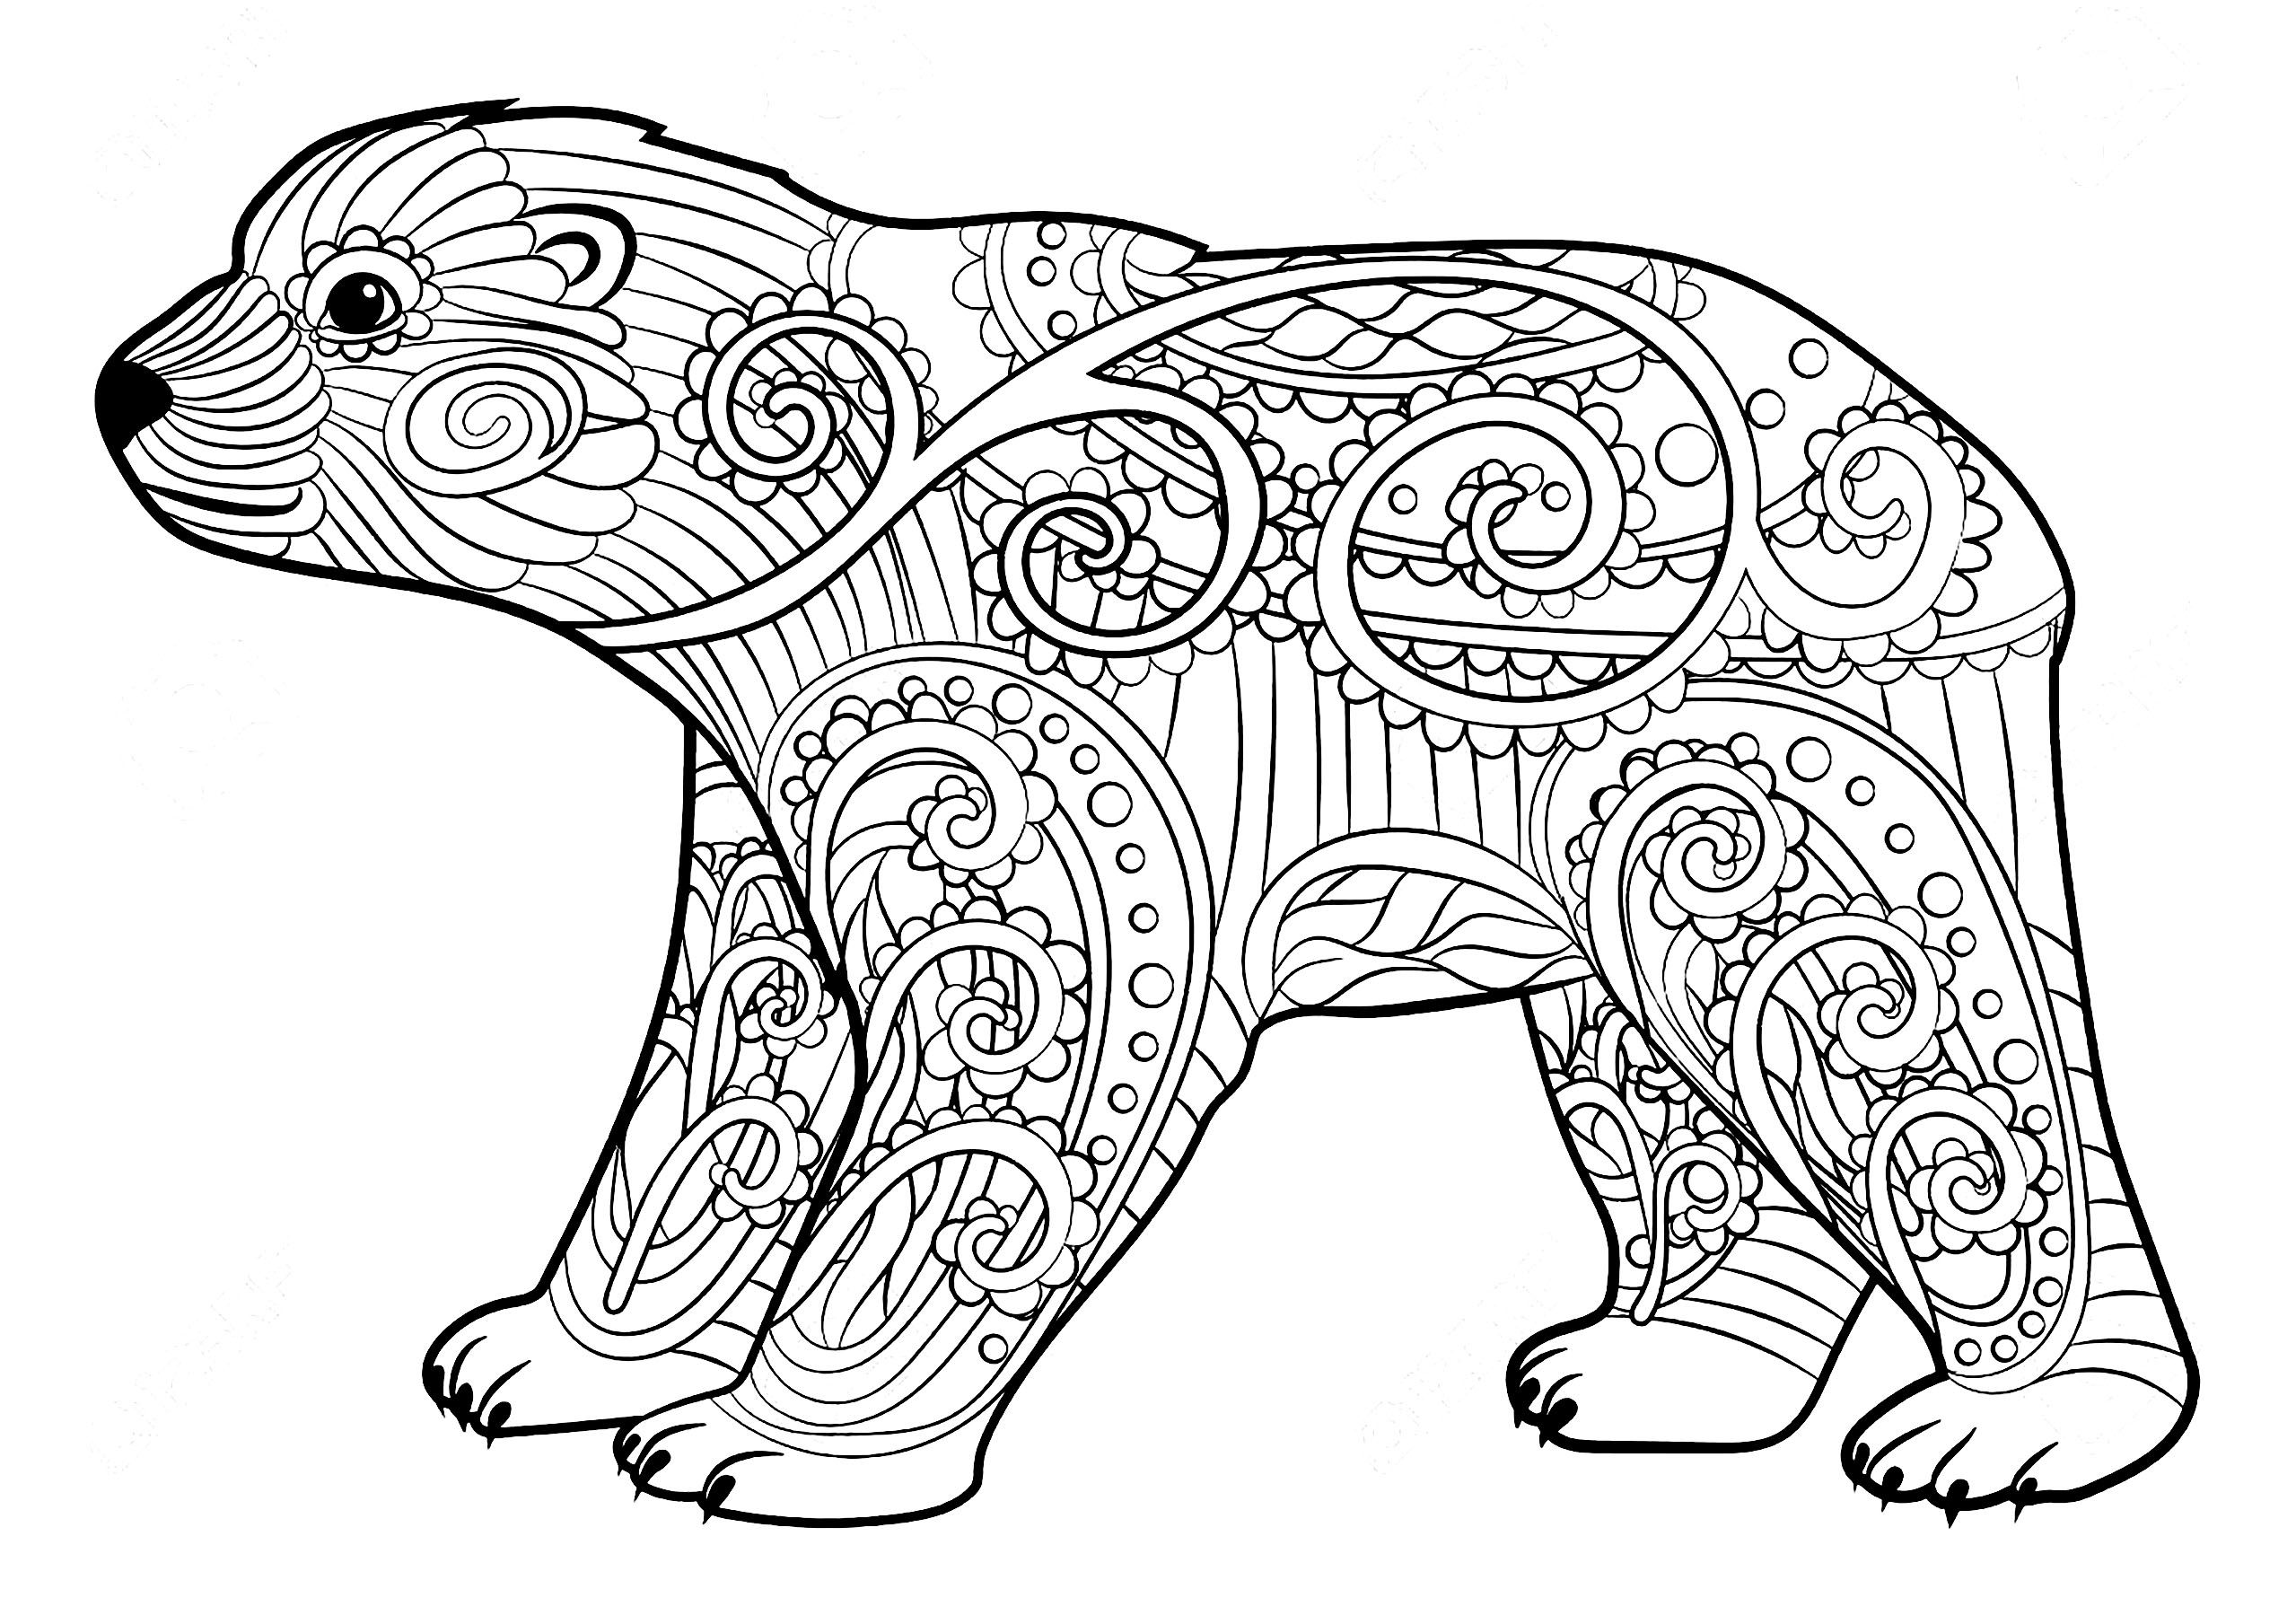 Young Bear Bears Coloring Pages For Adults Just Color Bear